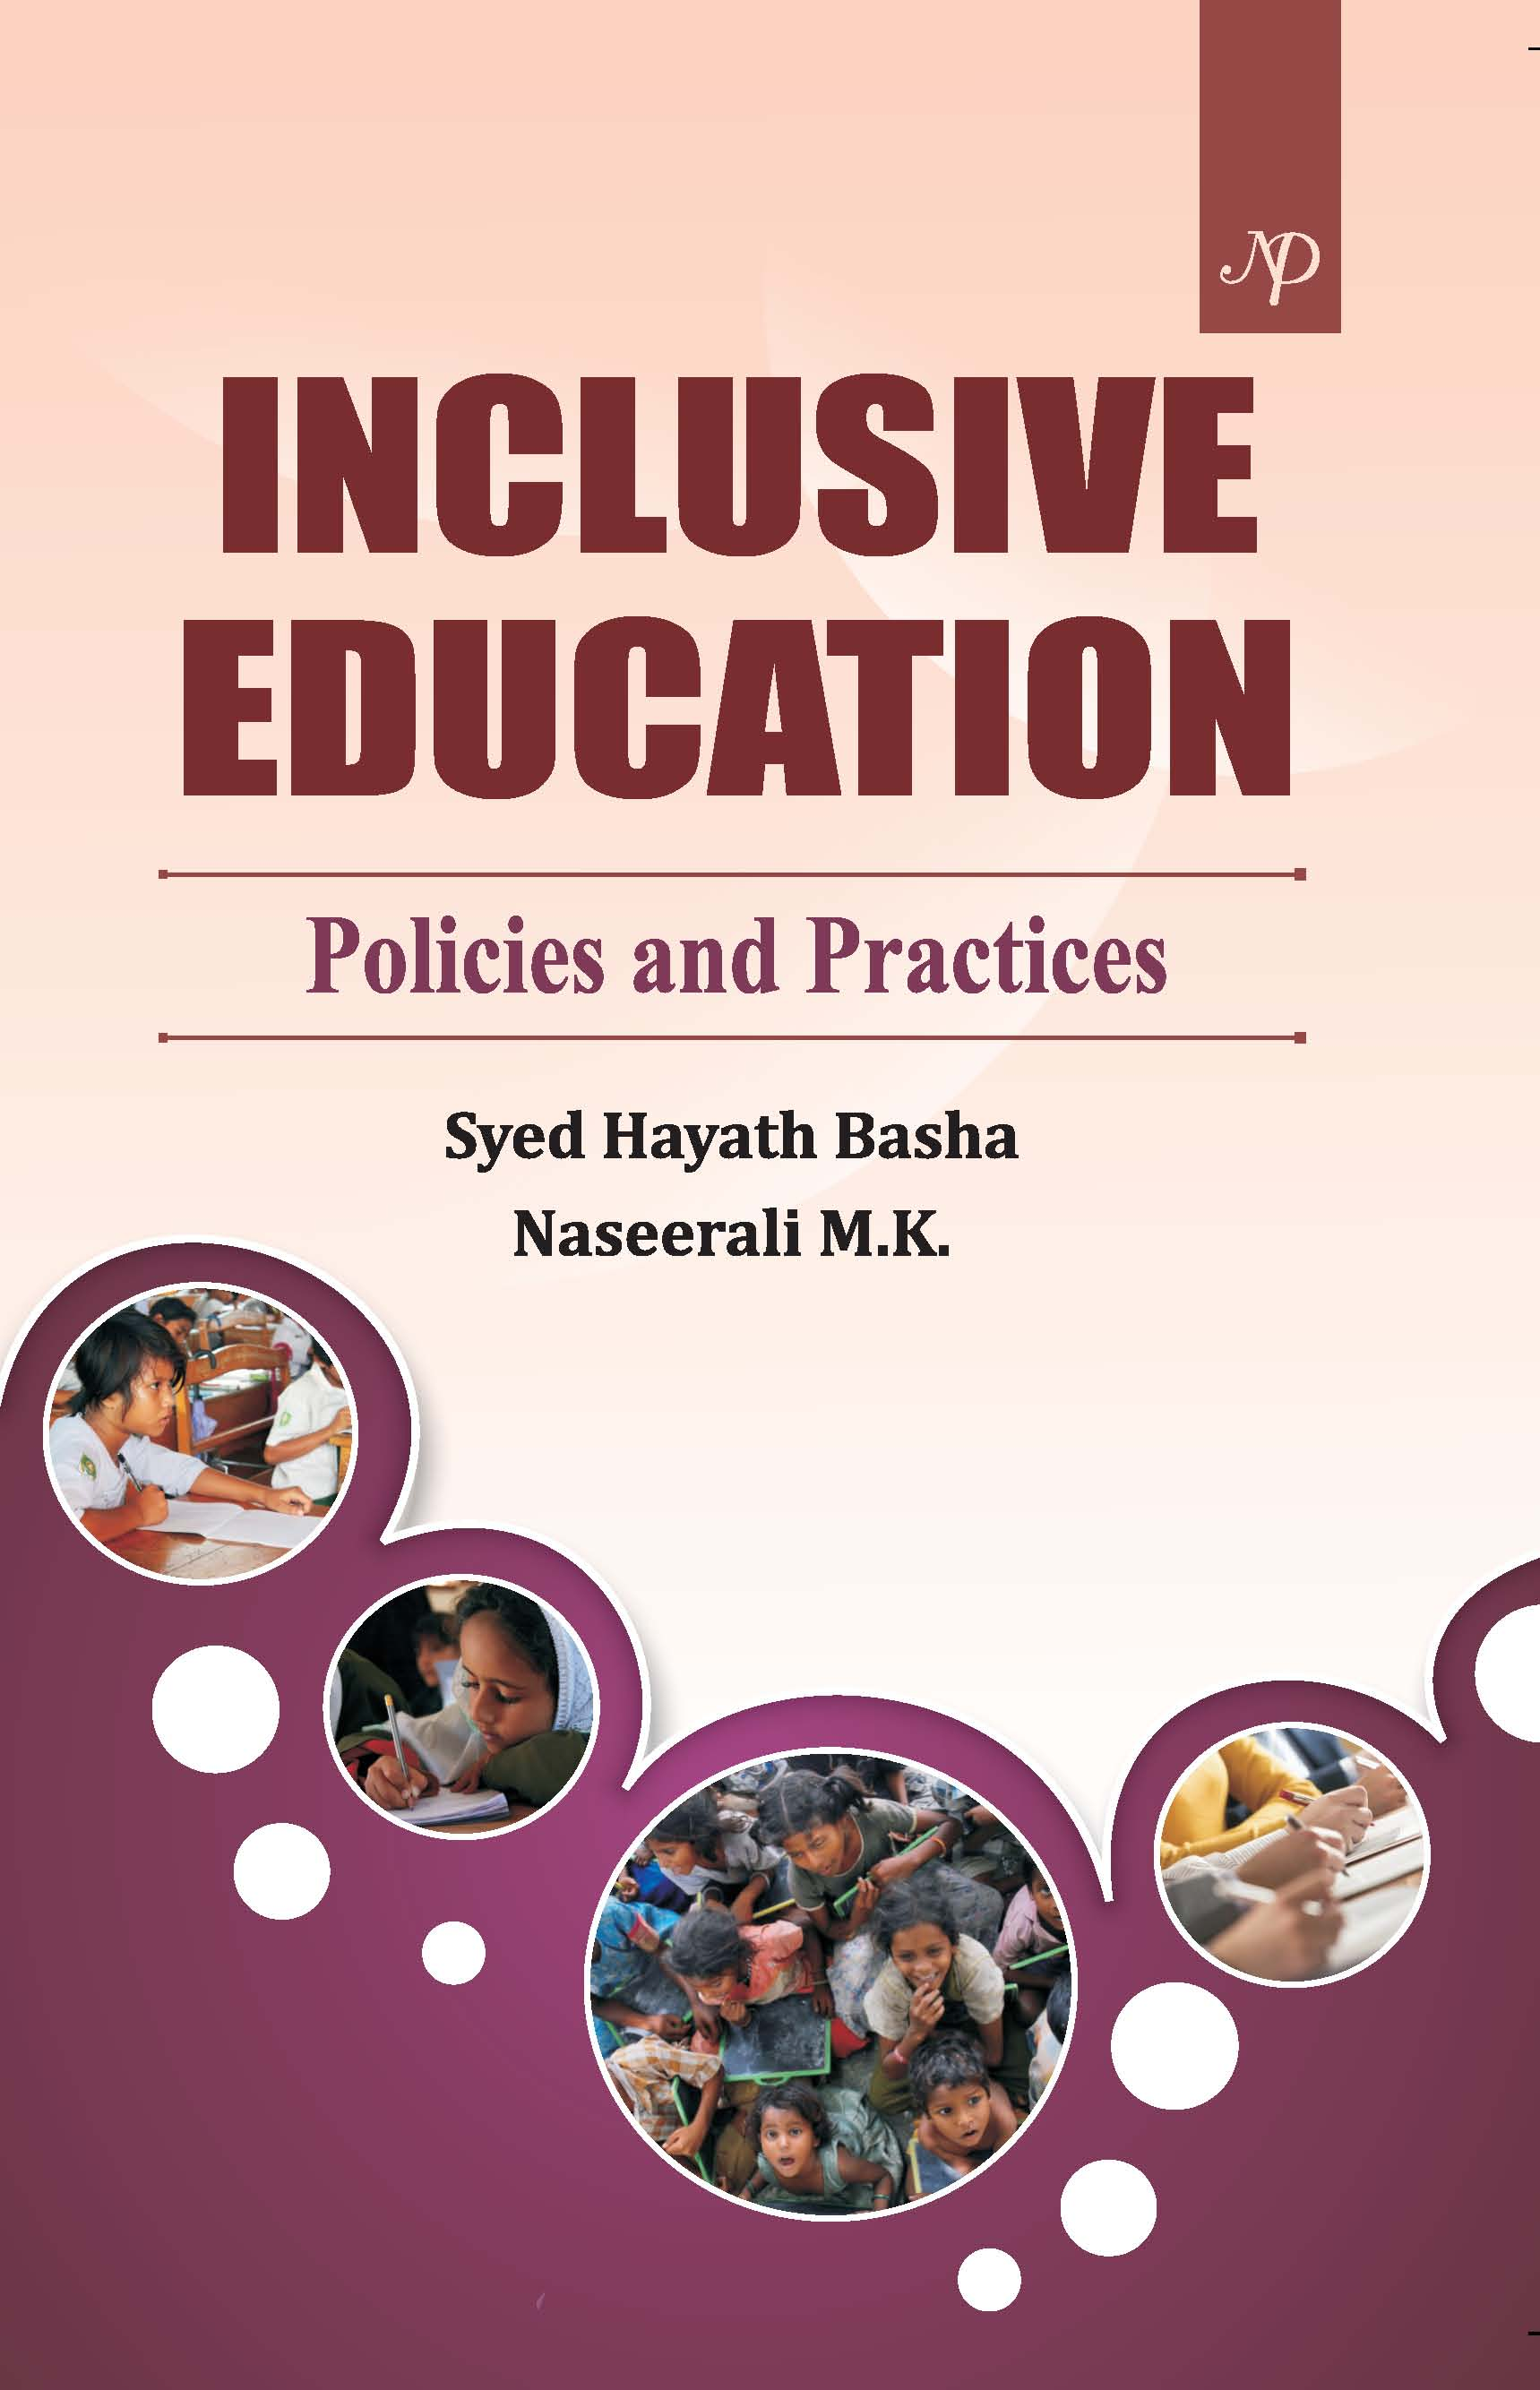 Inclusive Education: Policies and Practices